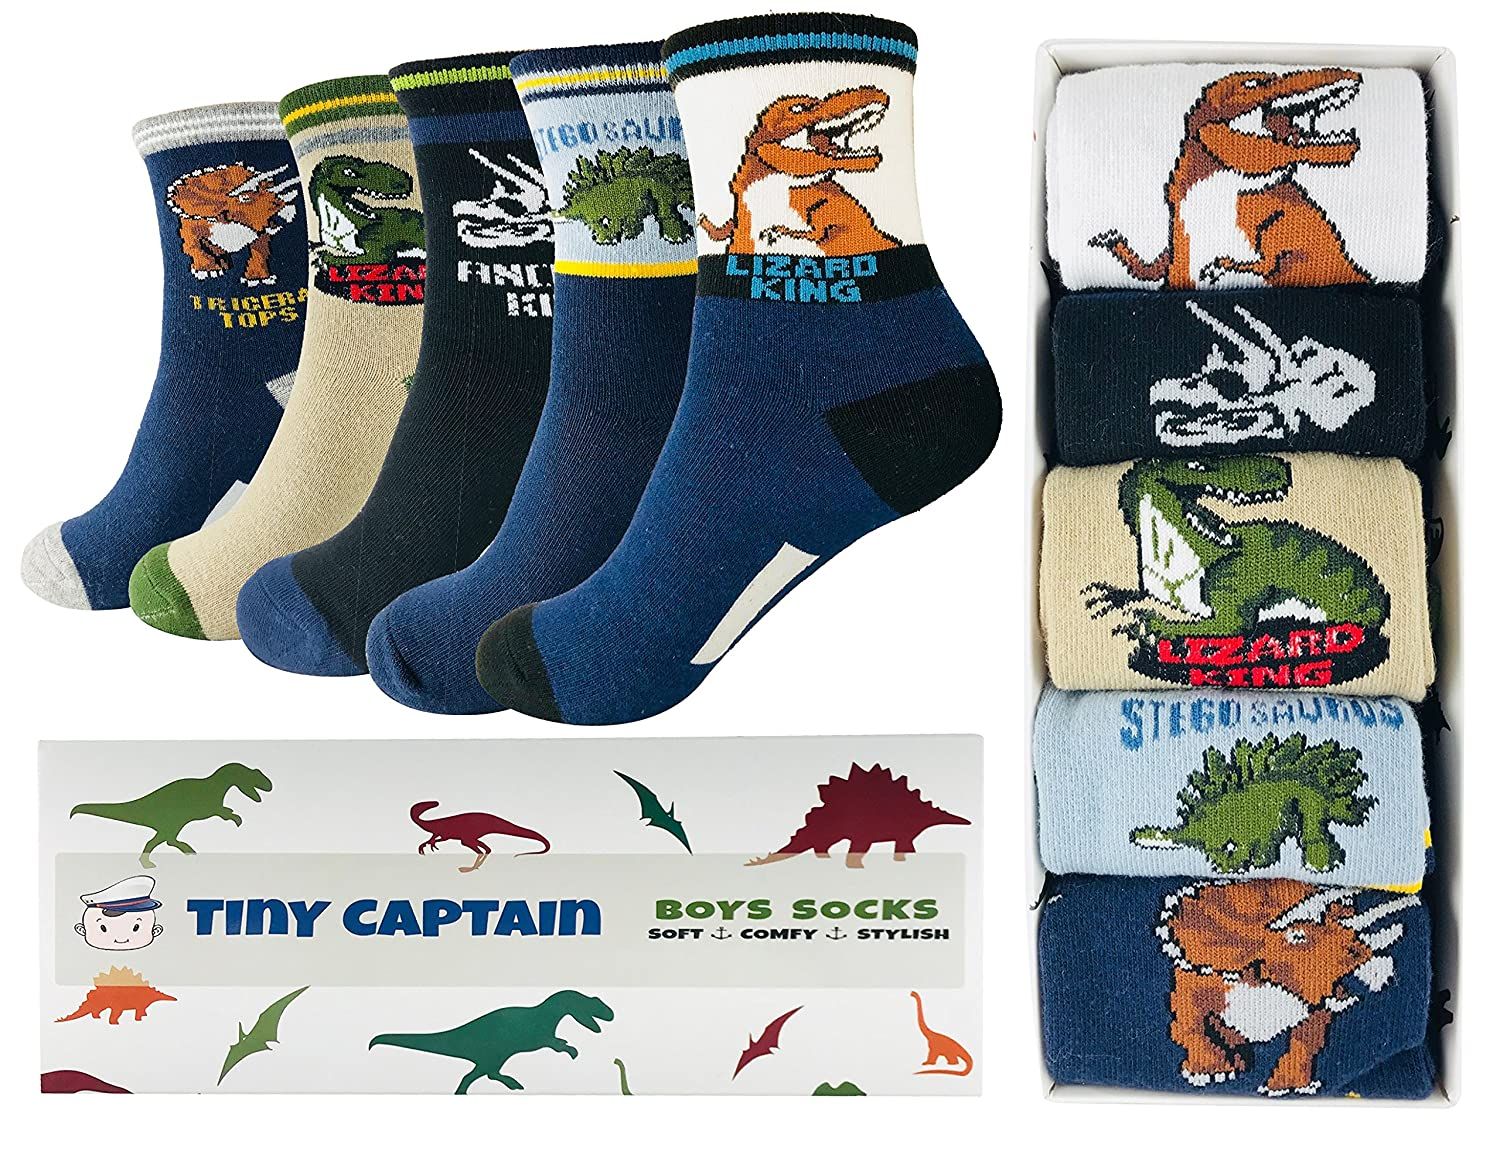 Boys Dinosaur Socks For 4 7 Year Old Best Gift For Age 4 Boy Cotton Sock 5 Pack Set From Tiny Captain Black White Grey